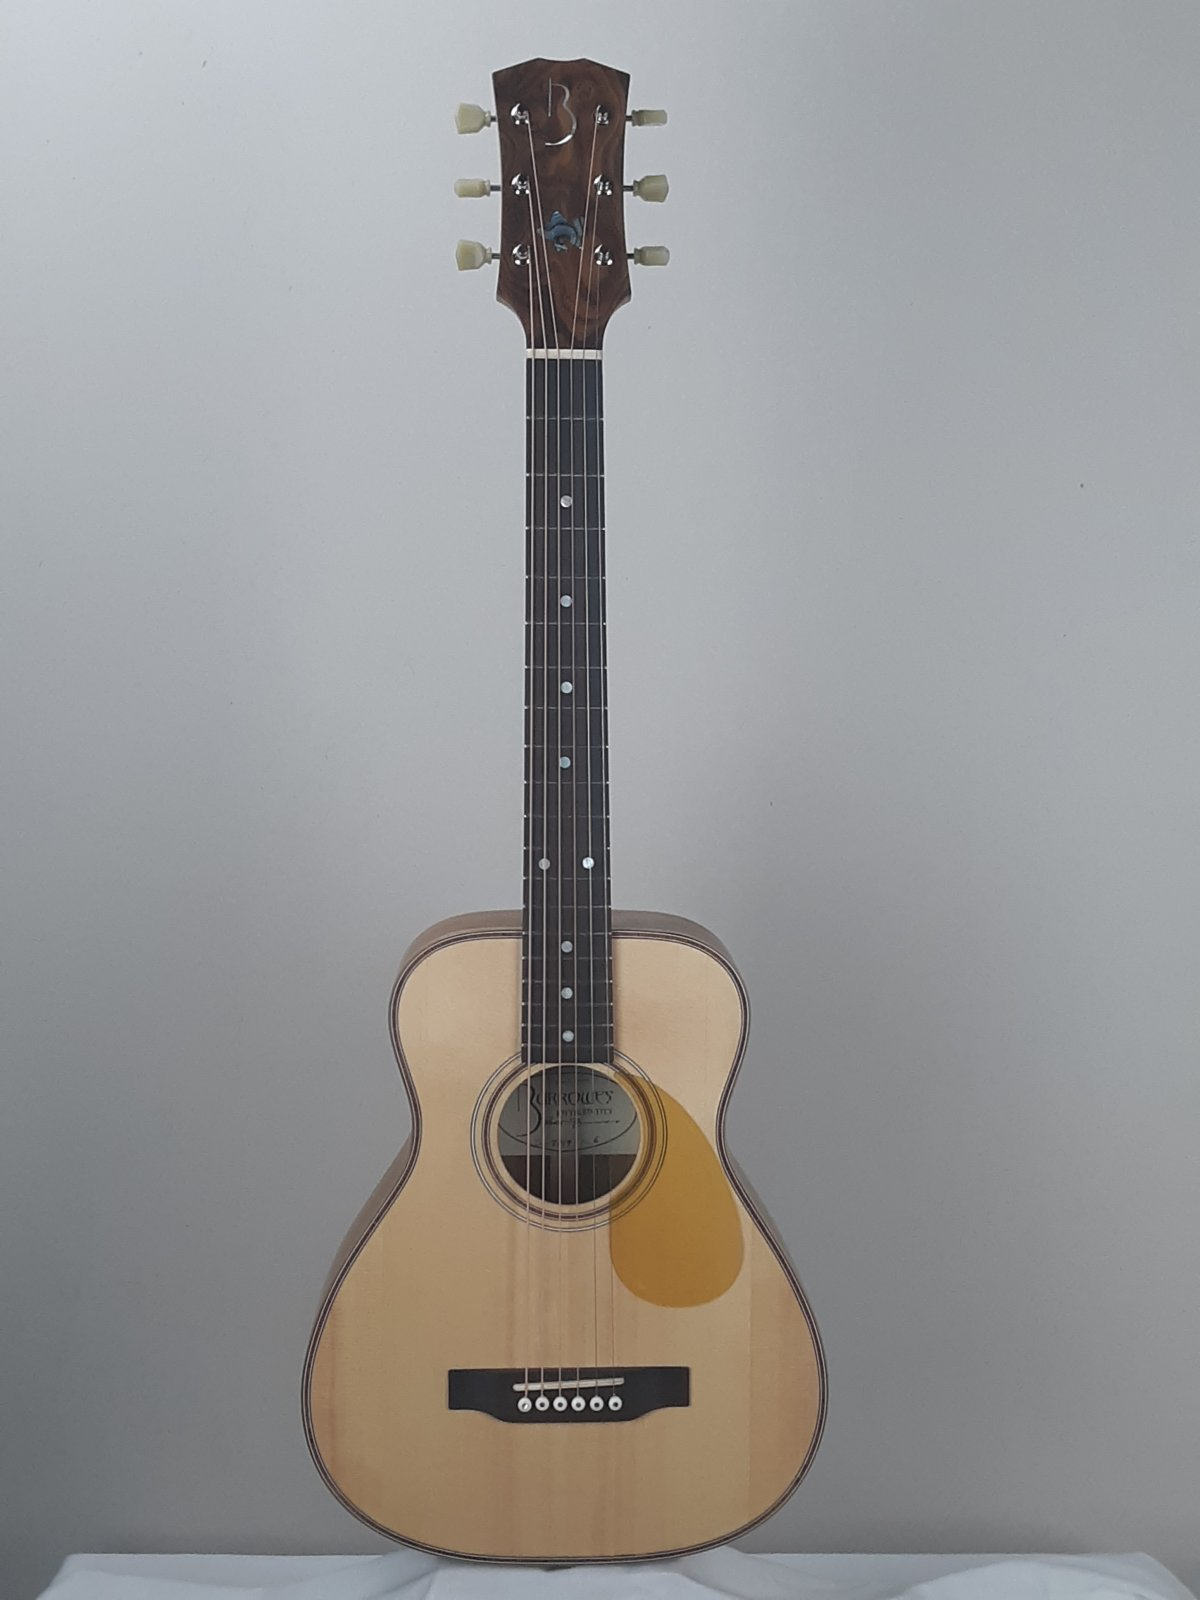 Burrowes 1/2 Size Guitar #6 - Consignment